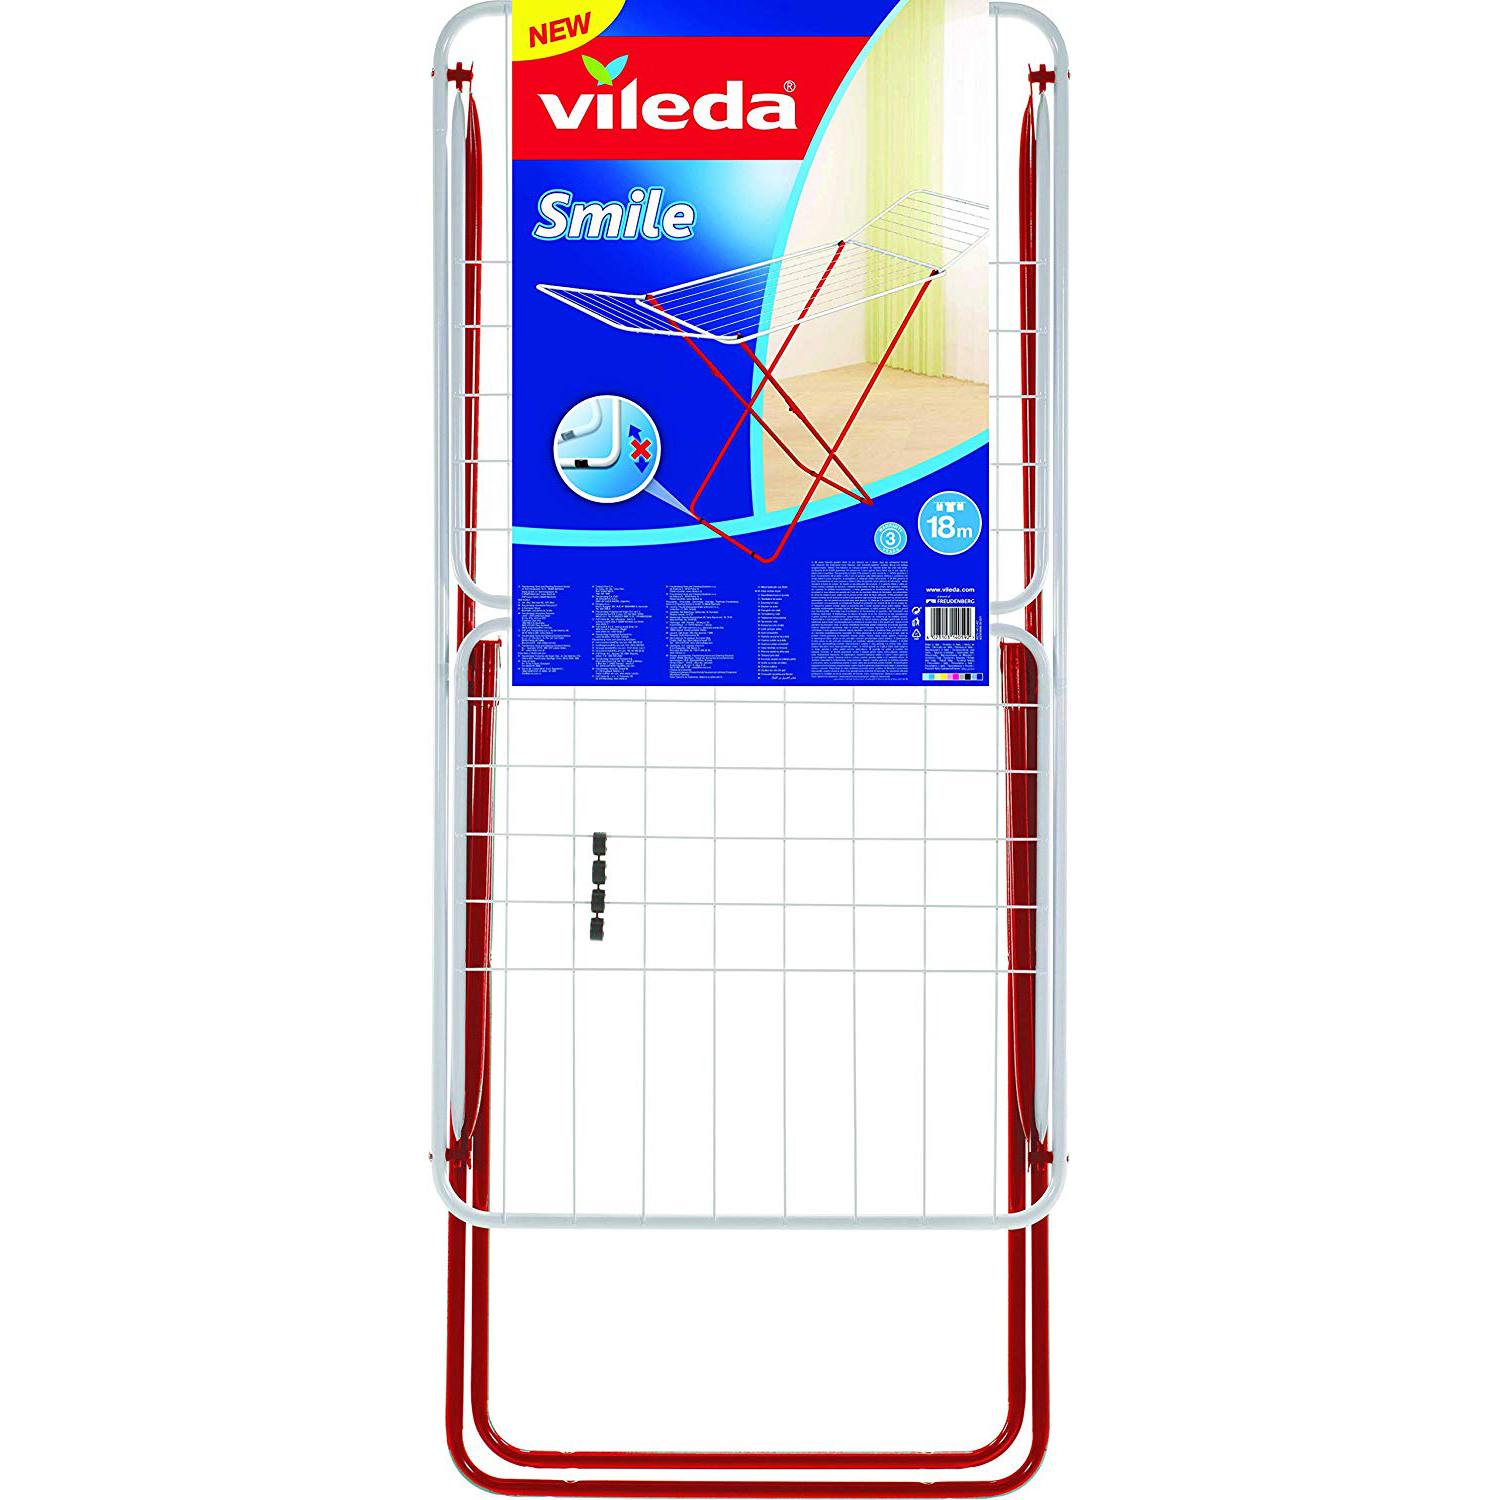 Vileda Smile Steel X-Leg Indoor Cloth Dryer VLID158383 - 18m (pc)